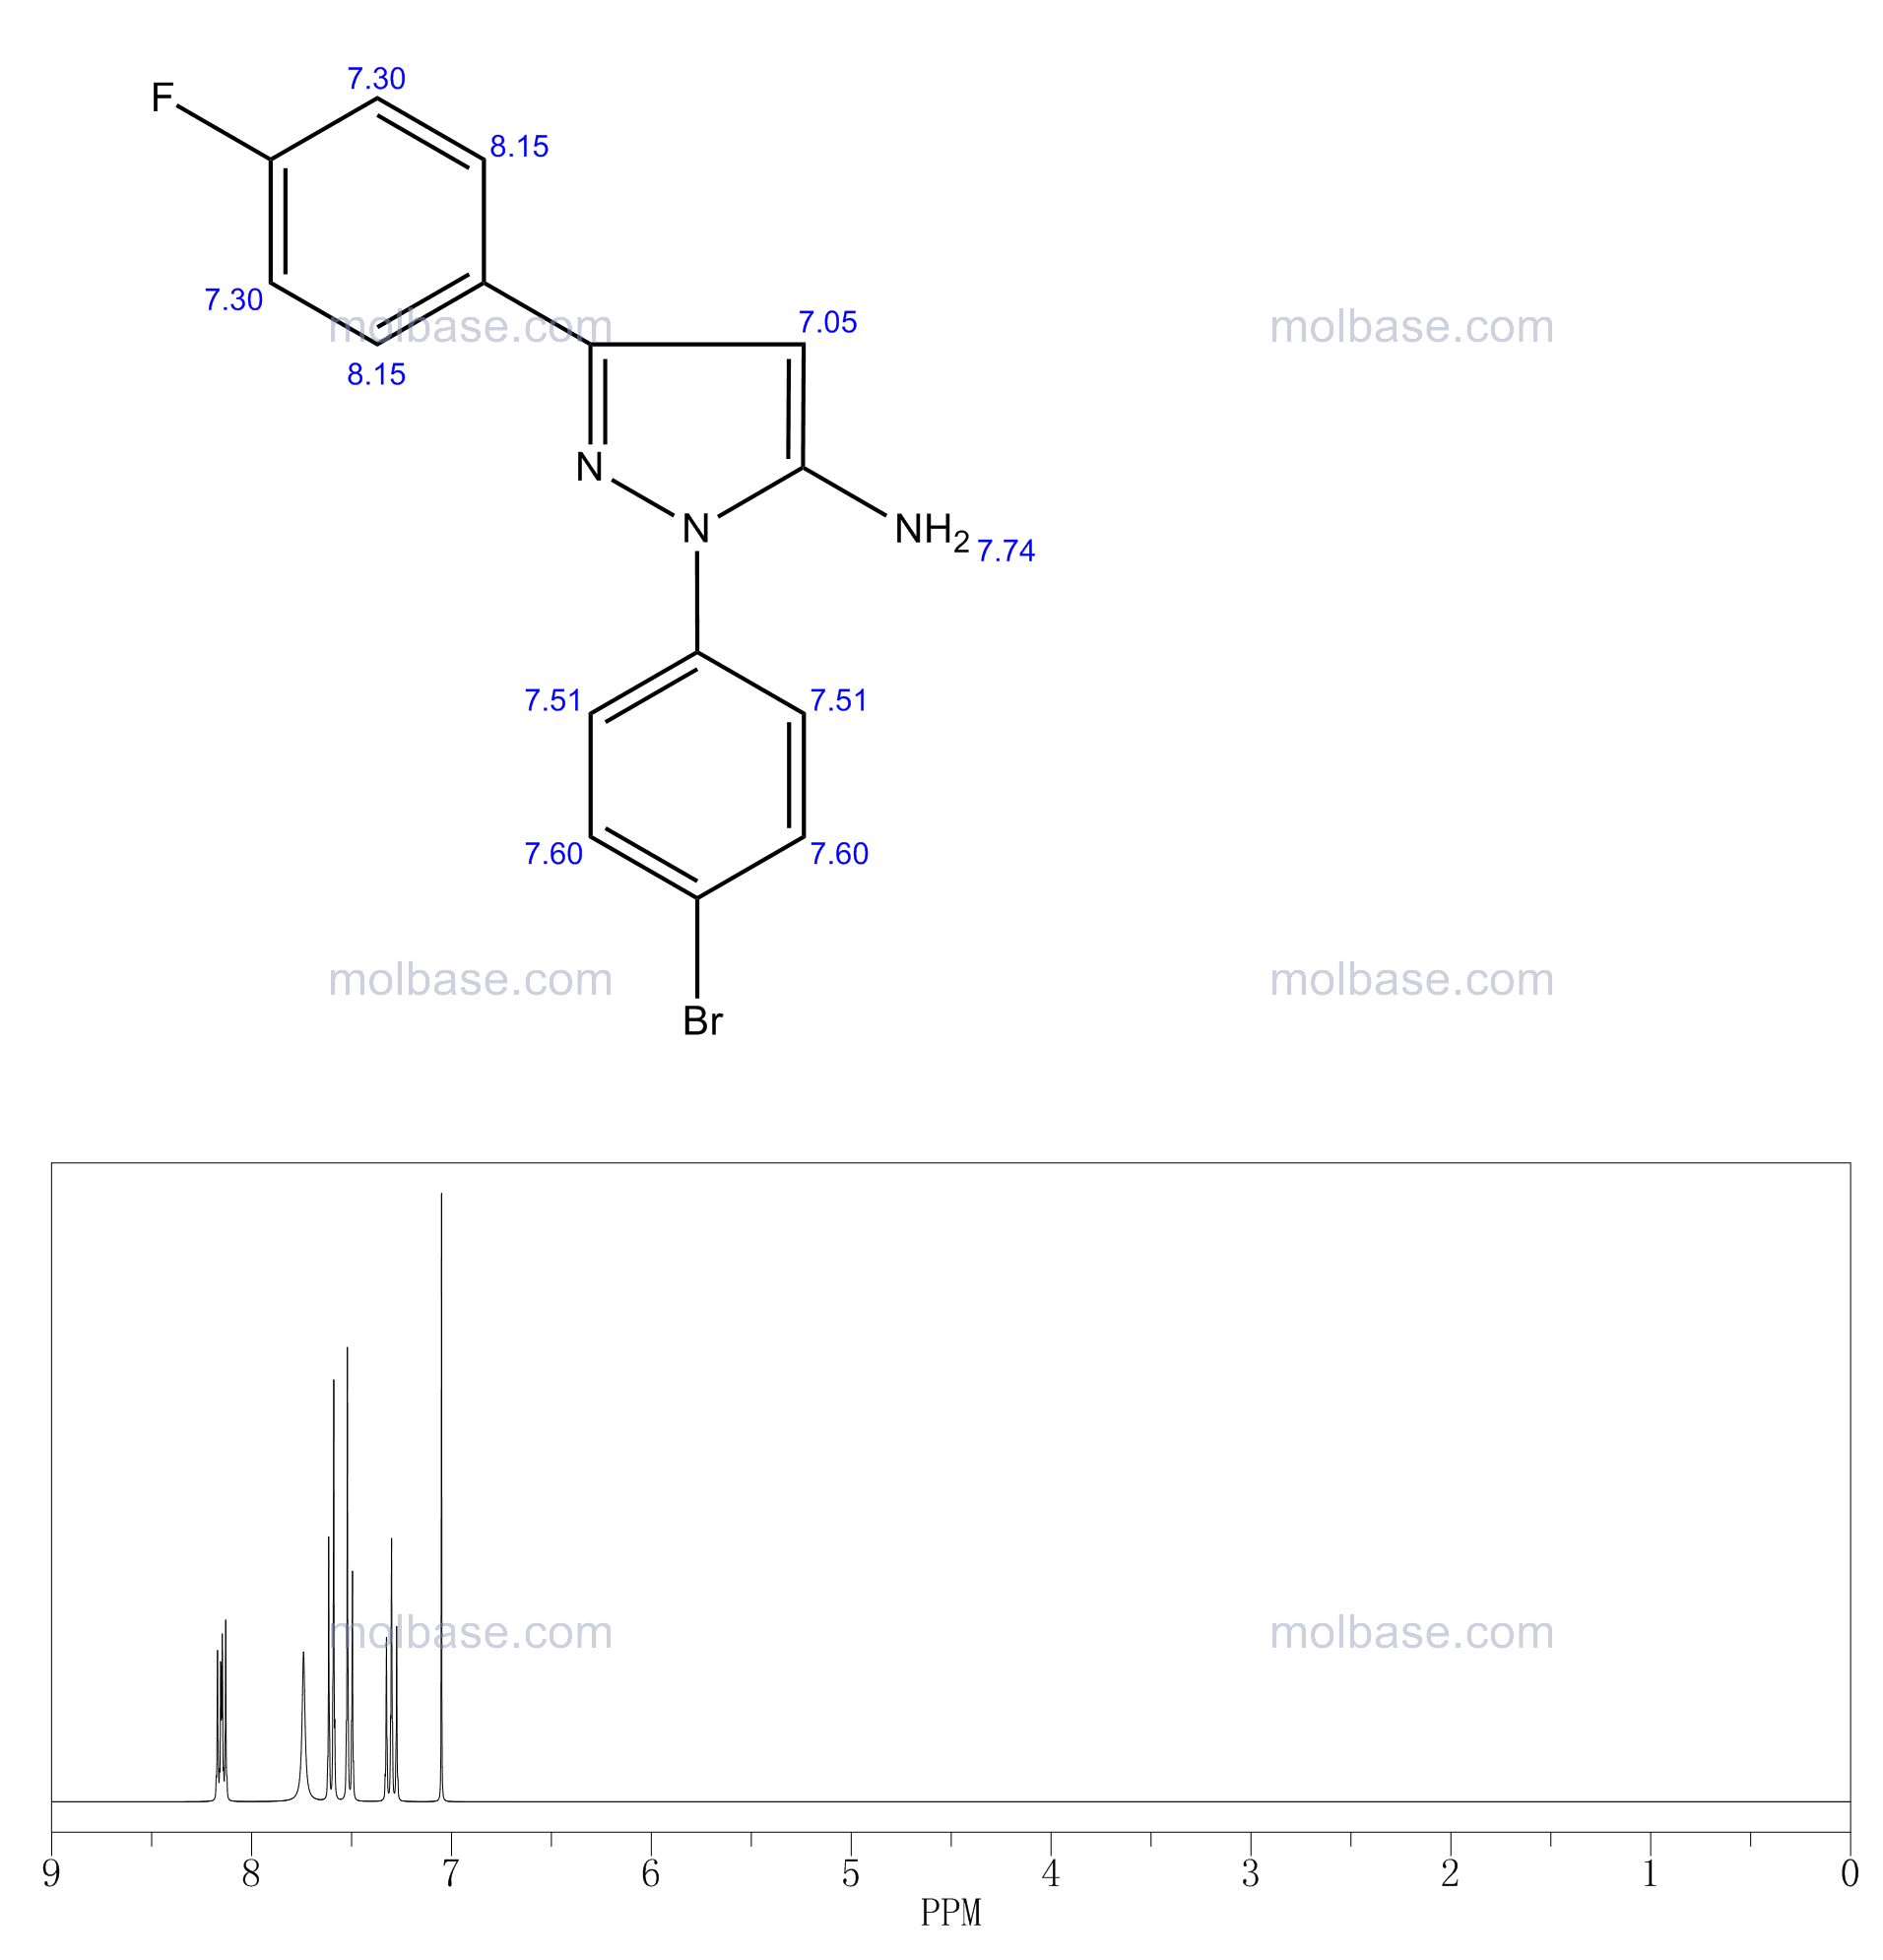 2-(4-bromophenyl)-5-(4-fluorophenyl)pyrazol-3-amine NMR spectra analysis, Chemical CAS NO. 72411-56-4 NMR spectral analysis, 2-(4-bromophenyl)-5-(4-fluorophenyl)pyrazol-3-amine C-NMR spectrum